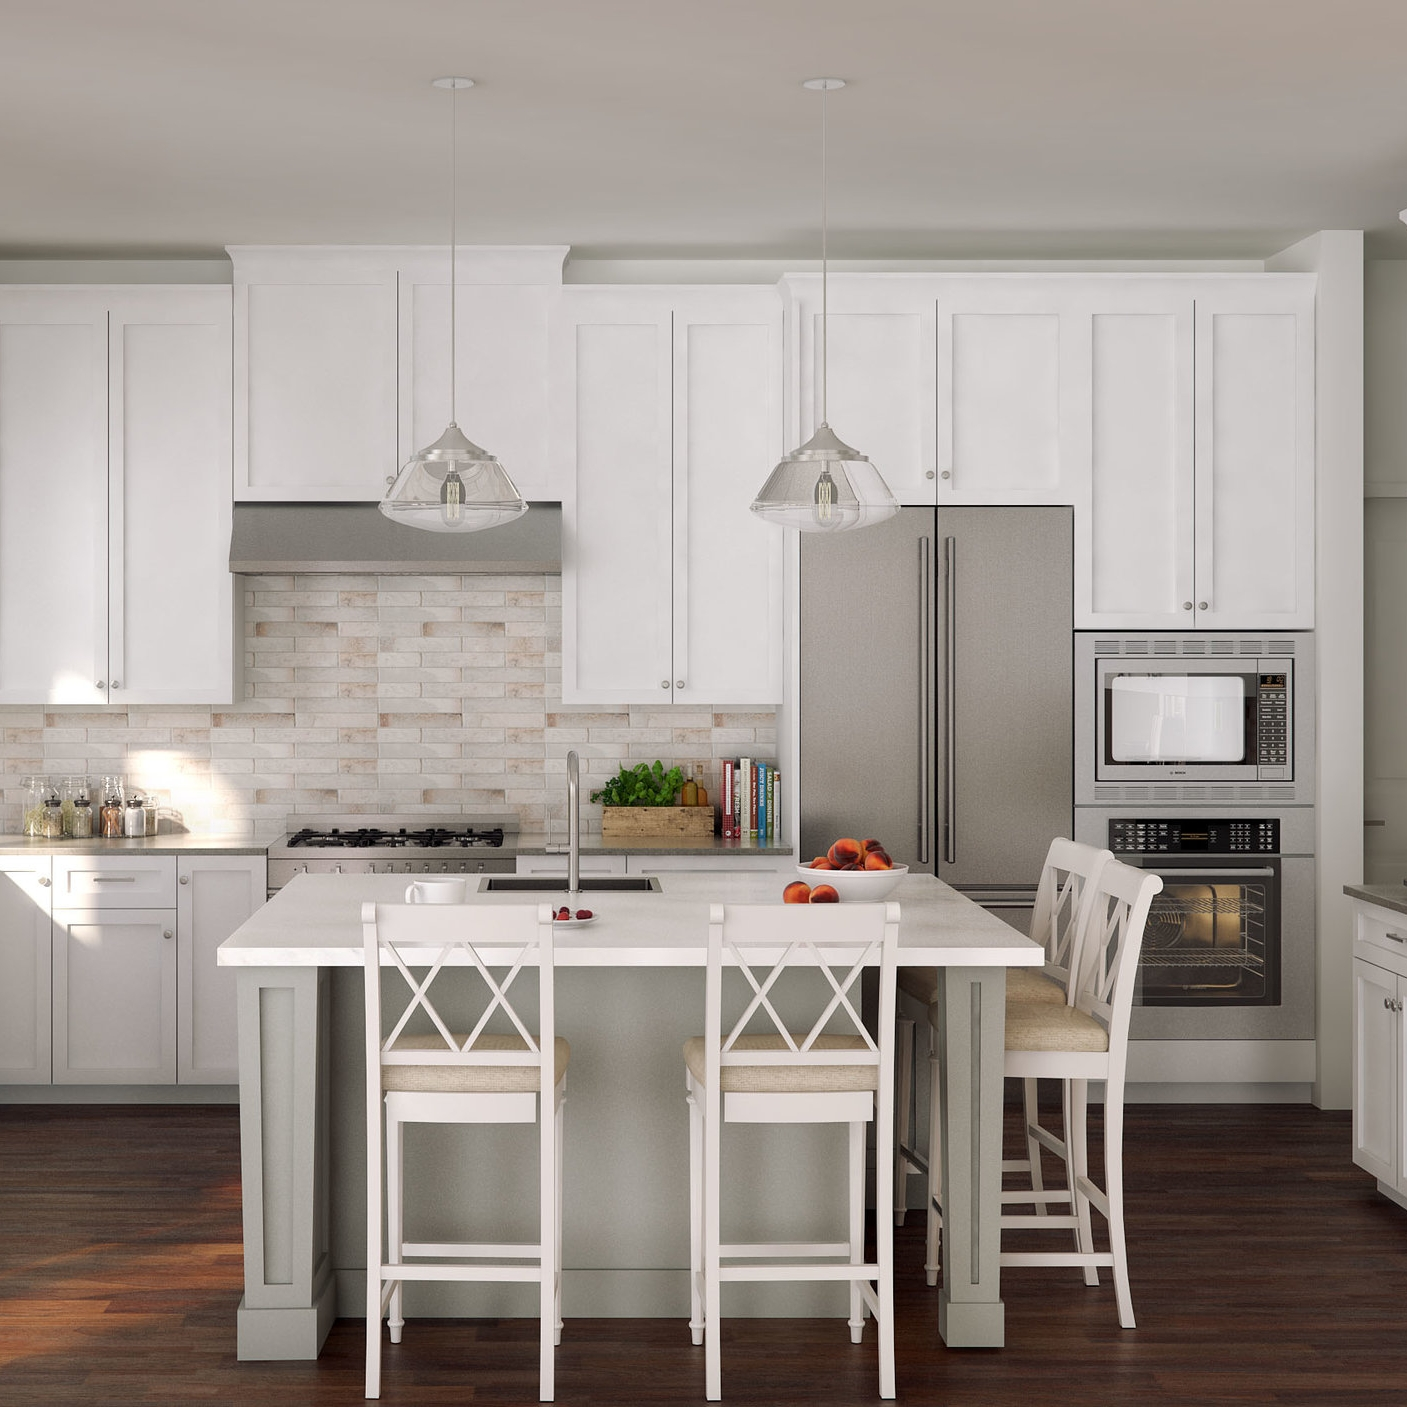 Abingdon Estates - Transitional Kitchen.jpg